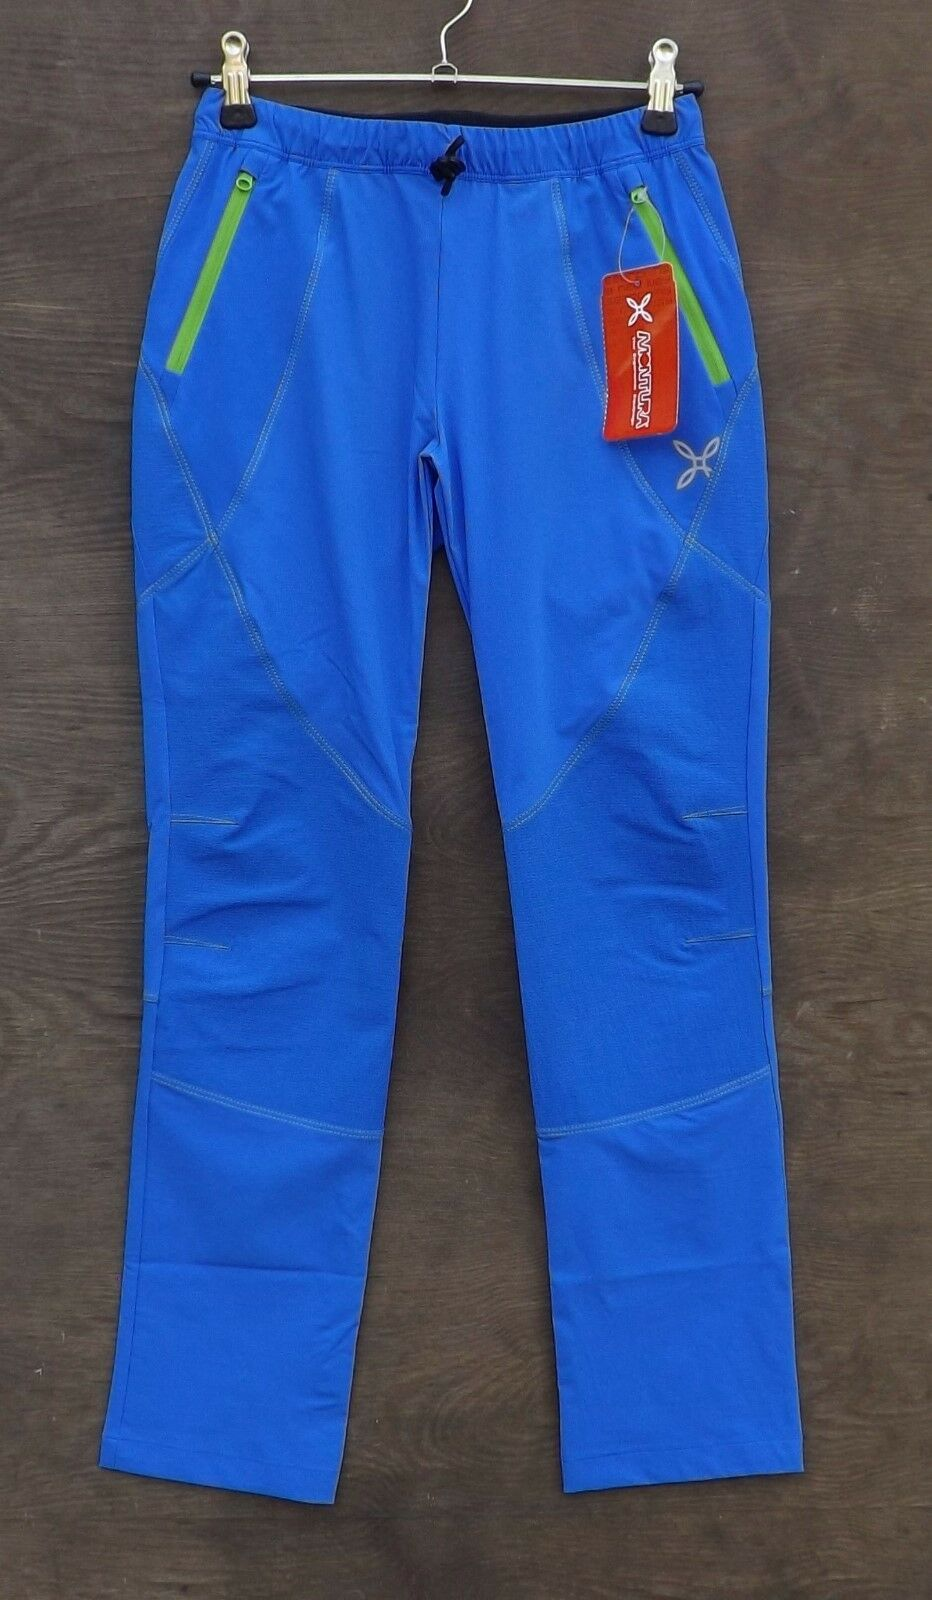 Montura Free K Light Pants Kids - elastische Outdoor- Kletterhose für Kinder